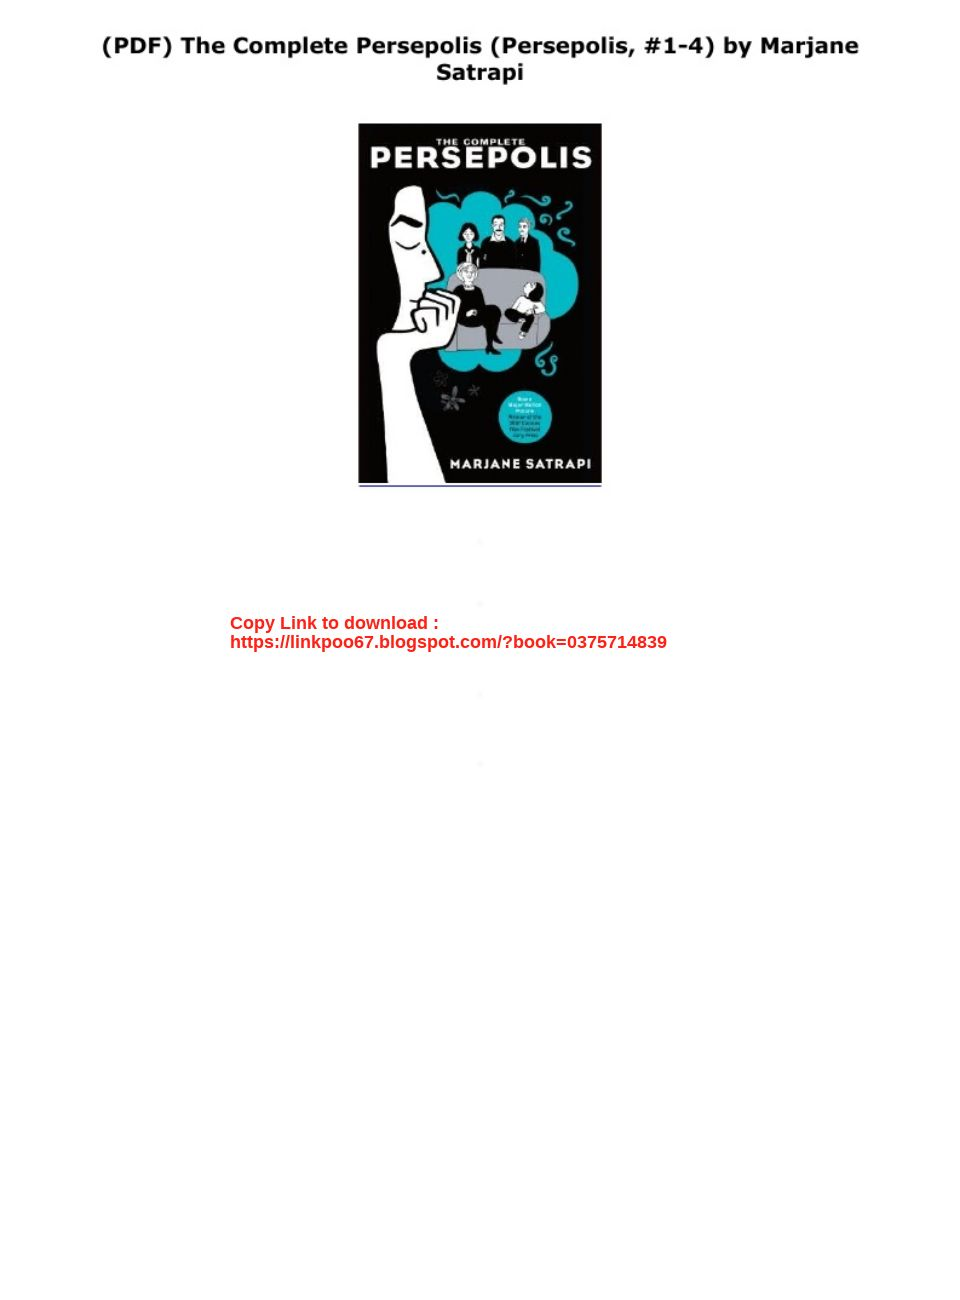 Pdf The Complete Persepolis Persepolis 1 4 By Marjane Satrapi Text Images Music Video Glogster Edu Interactive Multimedia Posters